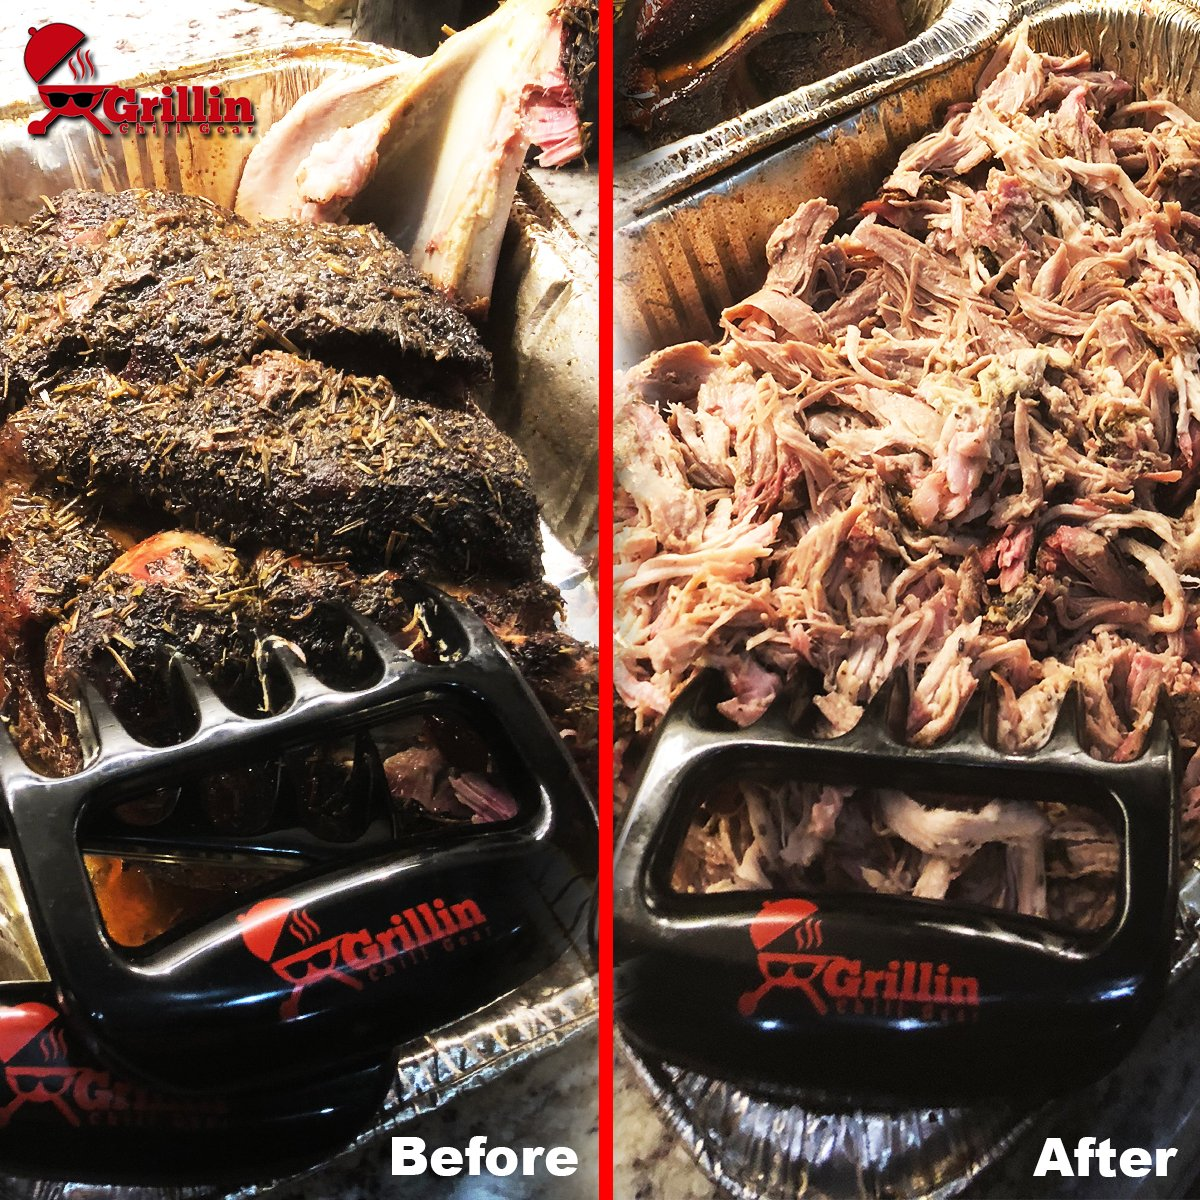 Grillin Chill Gear Meat Claws - Best Bear Claw Pulled Pork Meat Shredders in BBQ Grill Accessories +Extreme Heat Resistant Grill Gloves, Heavy Duty Aramid Fiber & Non Slip Silicone, Soft Cotton Liner by Grillin Chill Gear (Image #6)